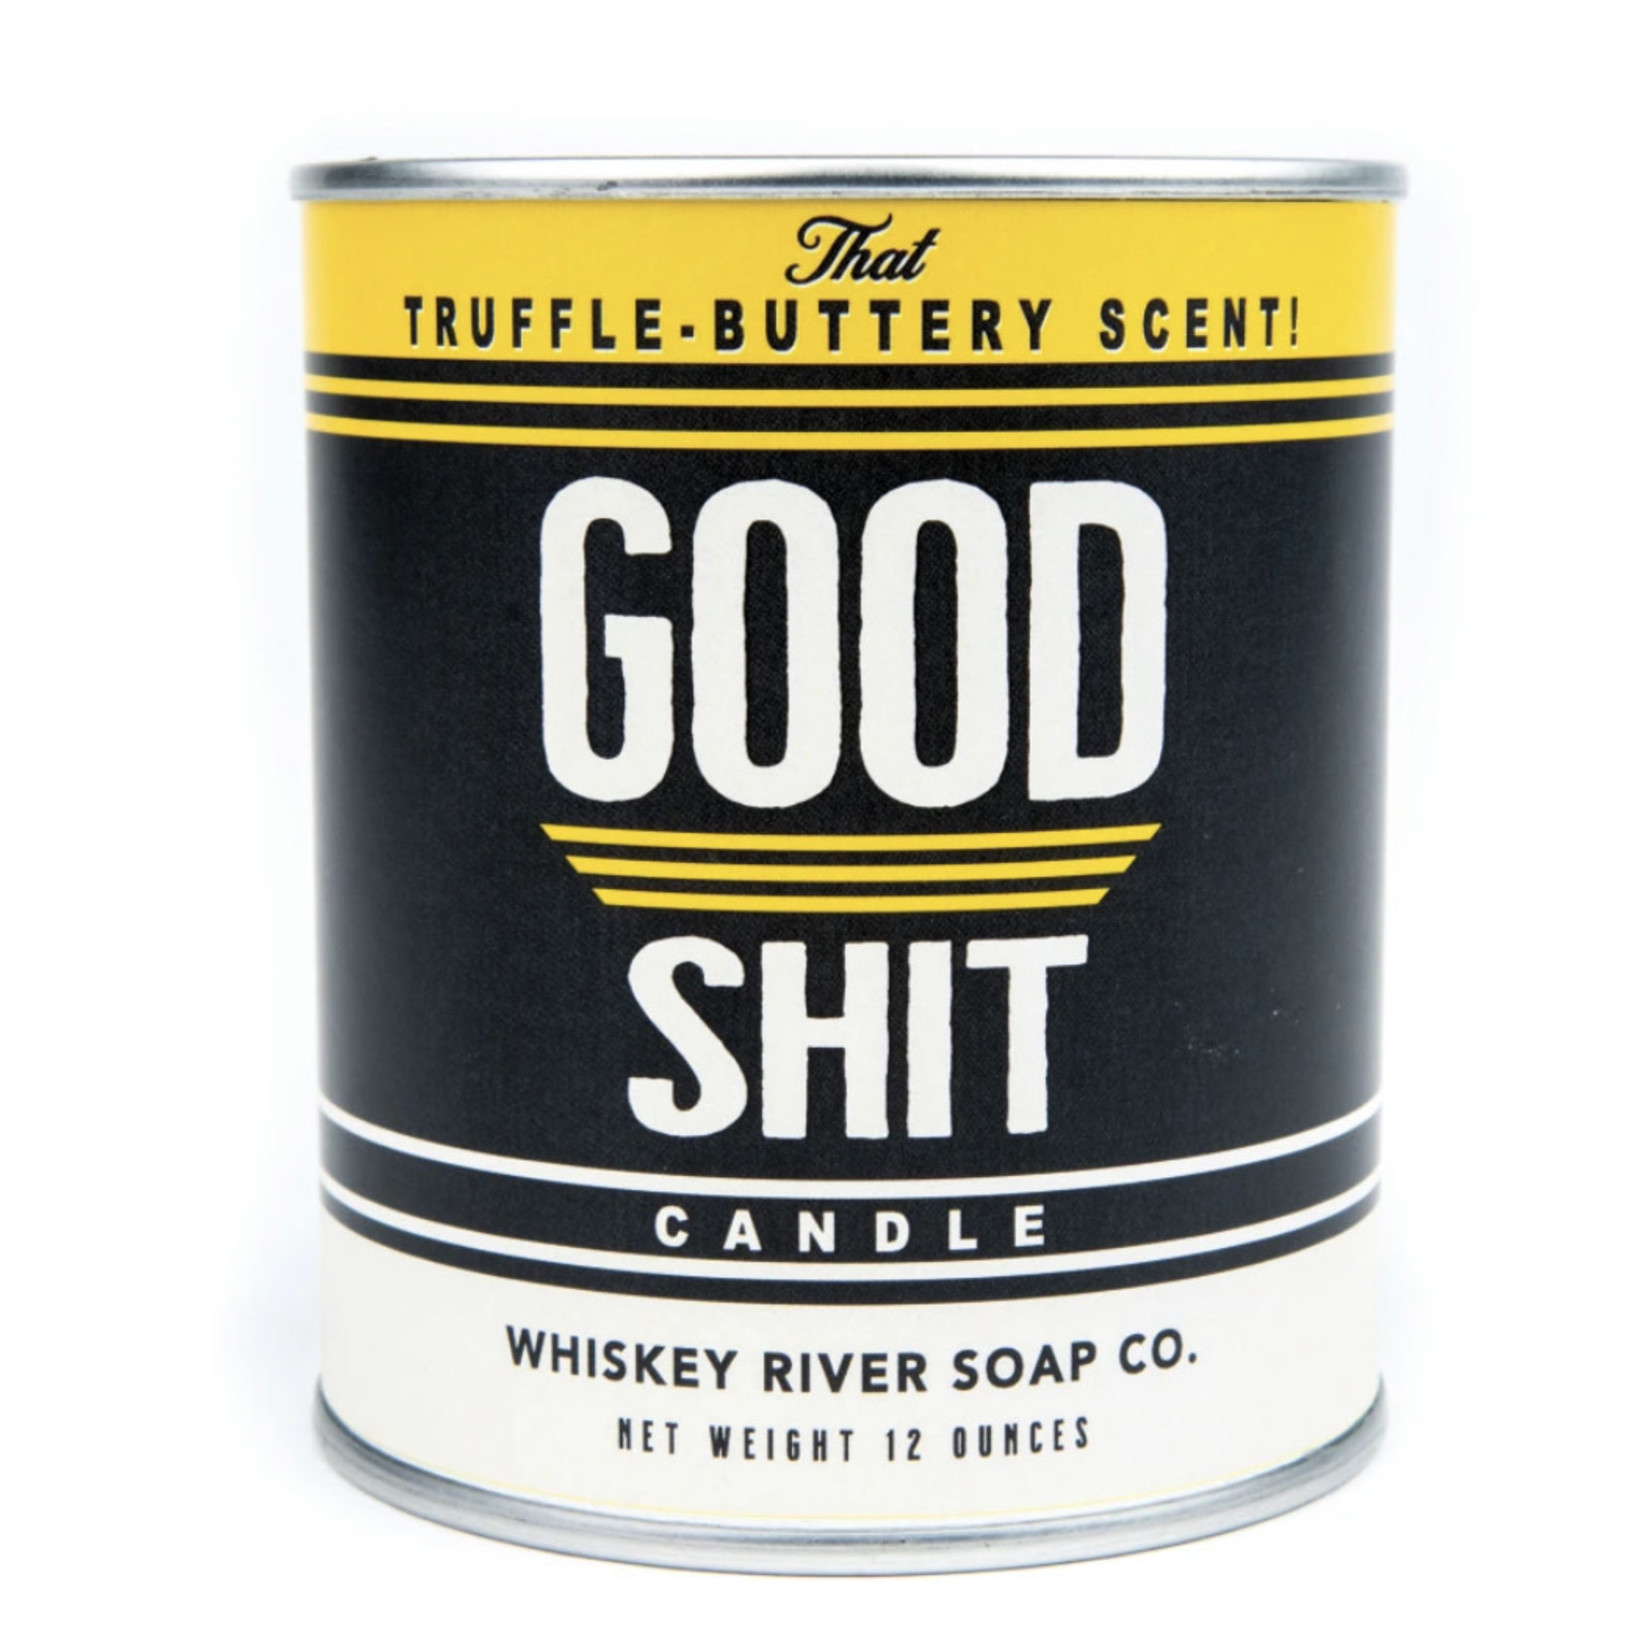 Whiskey River Soap Candle: Paint Can